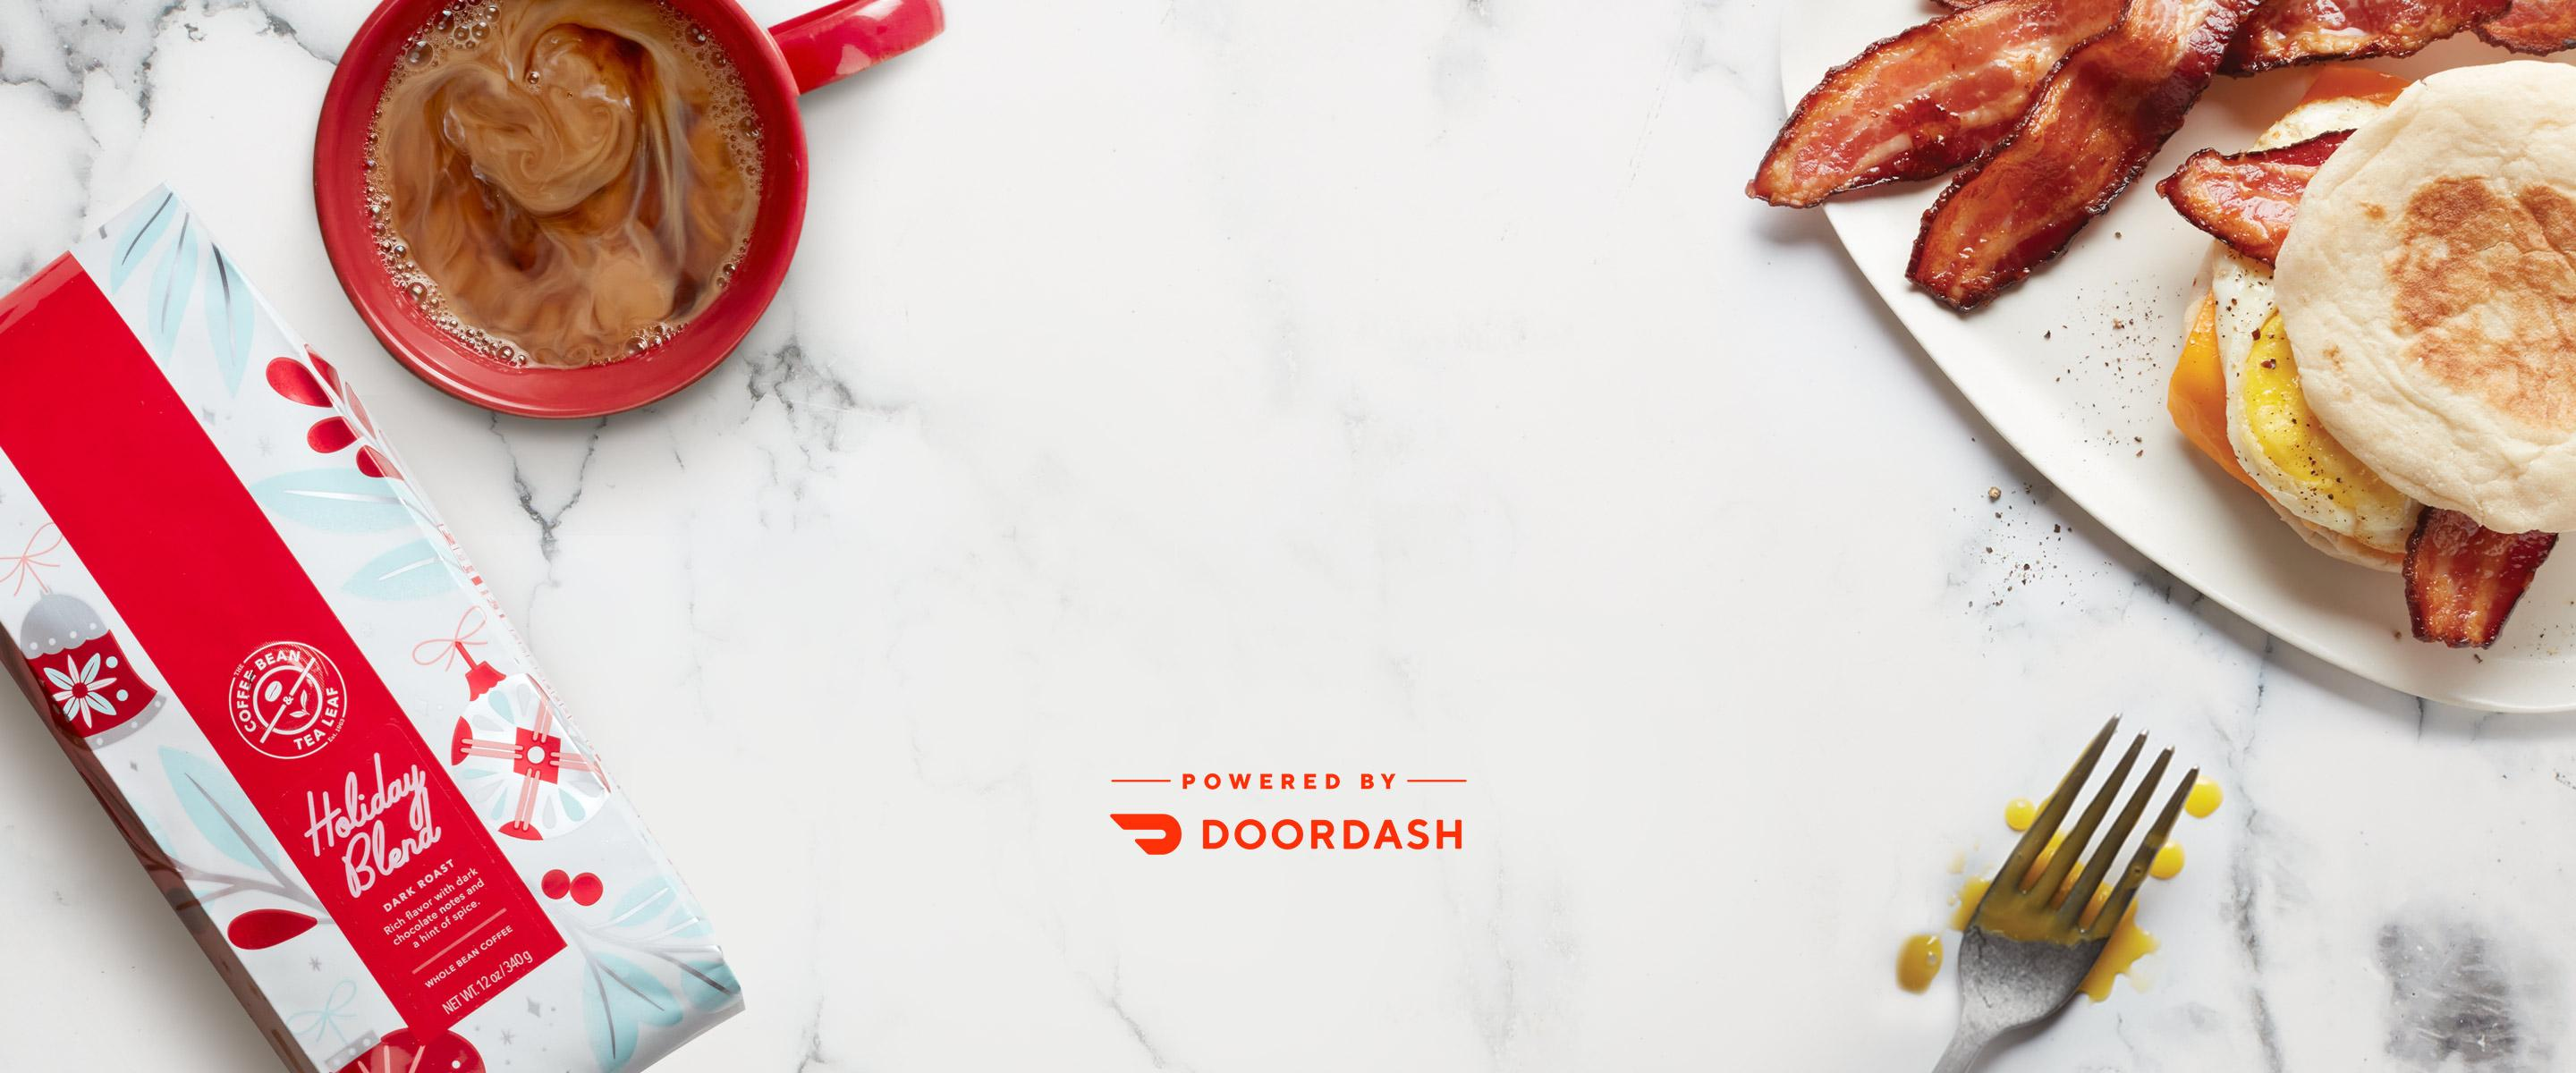 Free Delivery holiday coffee and breakfast sandwich